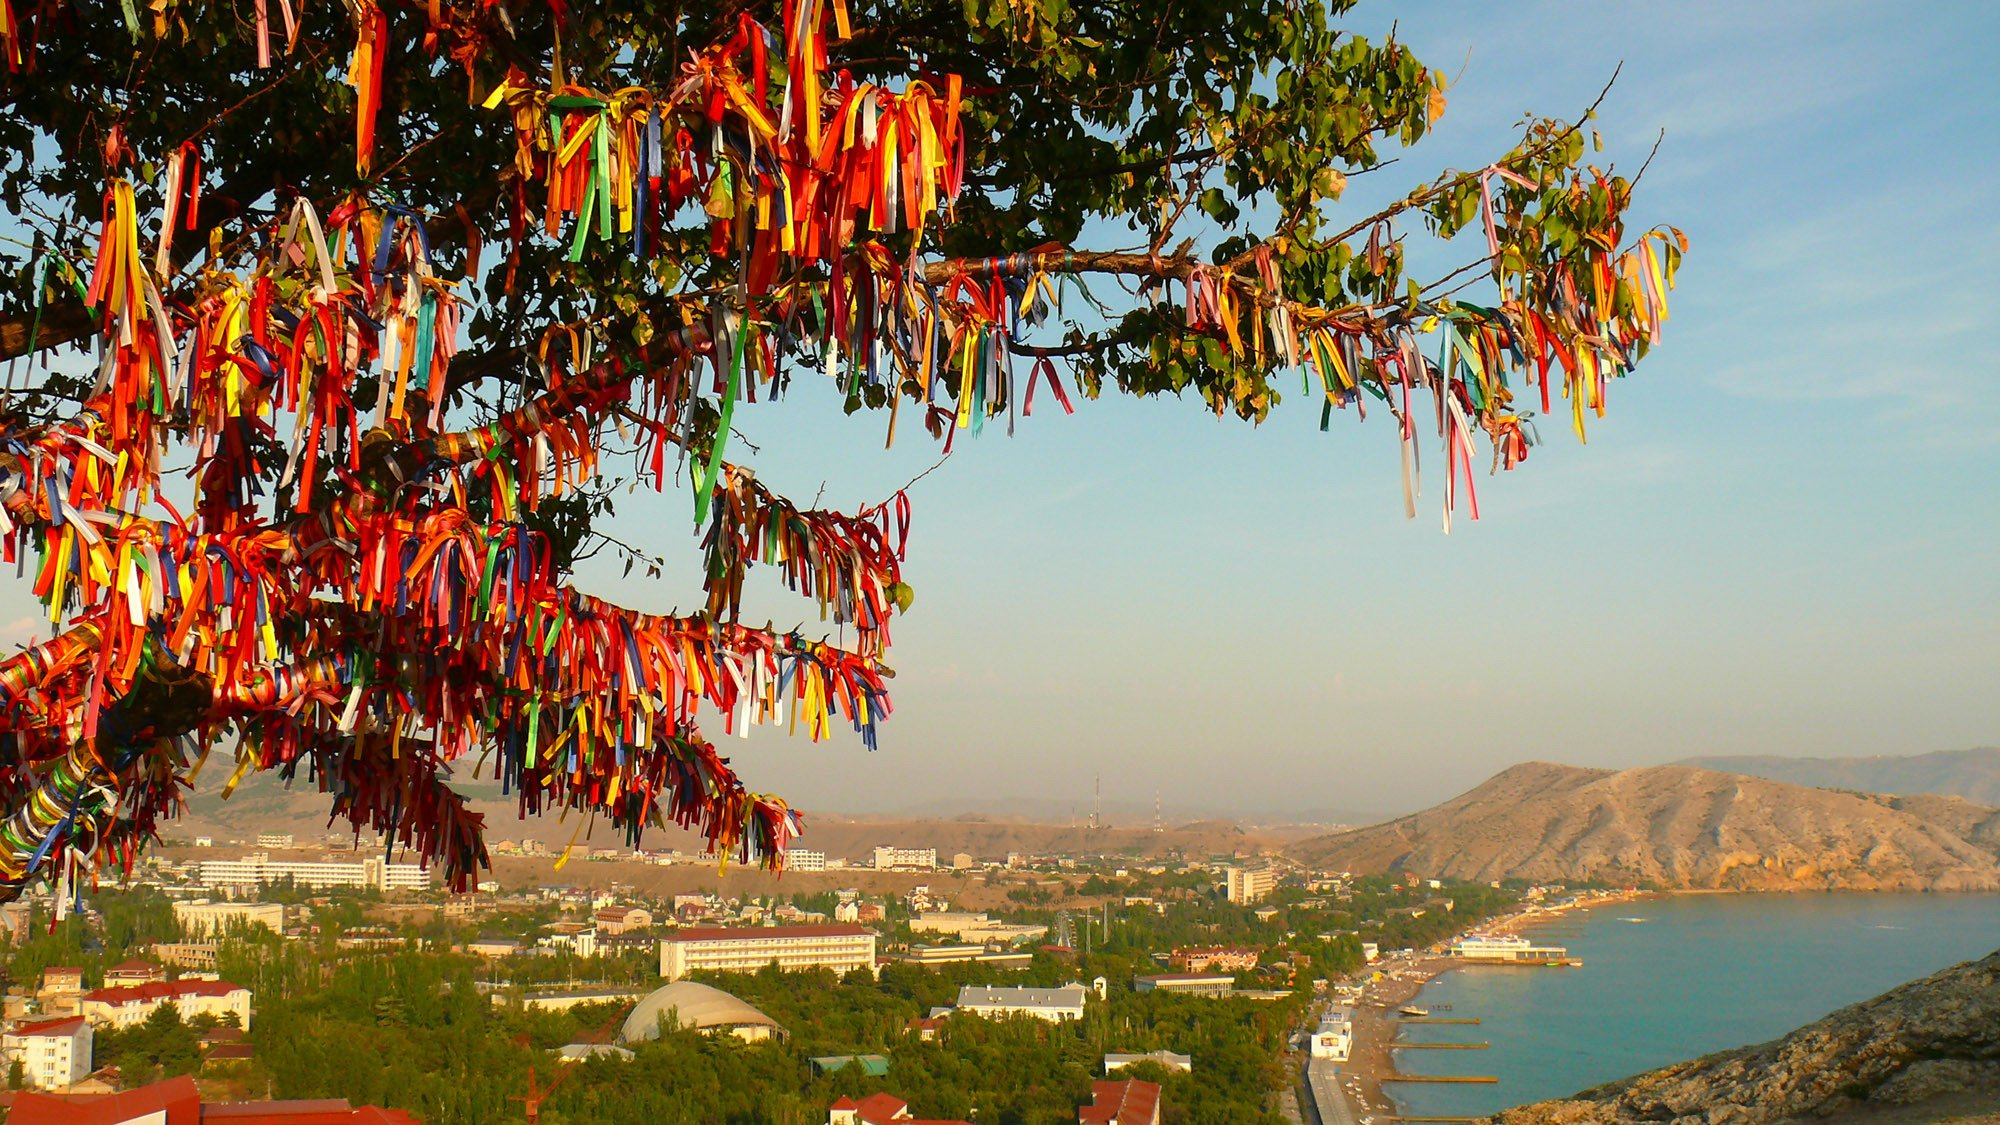 People tie clothes to the rose branches and trees for their wishes during Hıdırellez. (Shutterstock Photo)